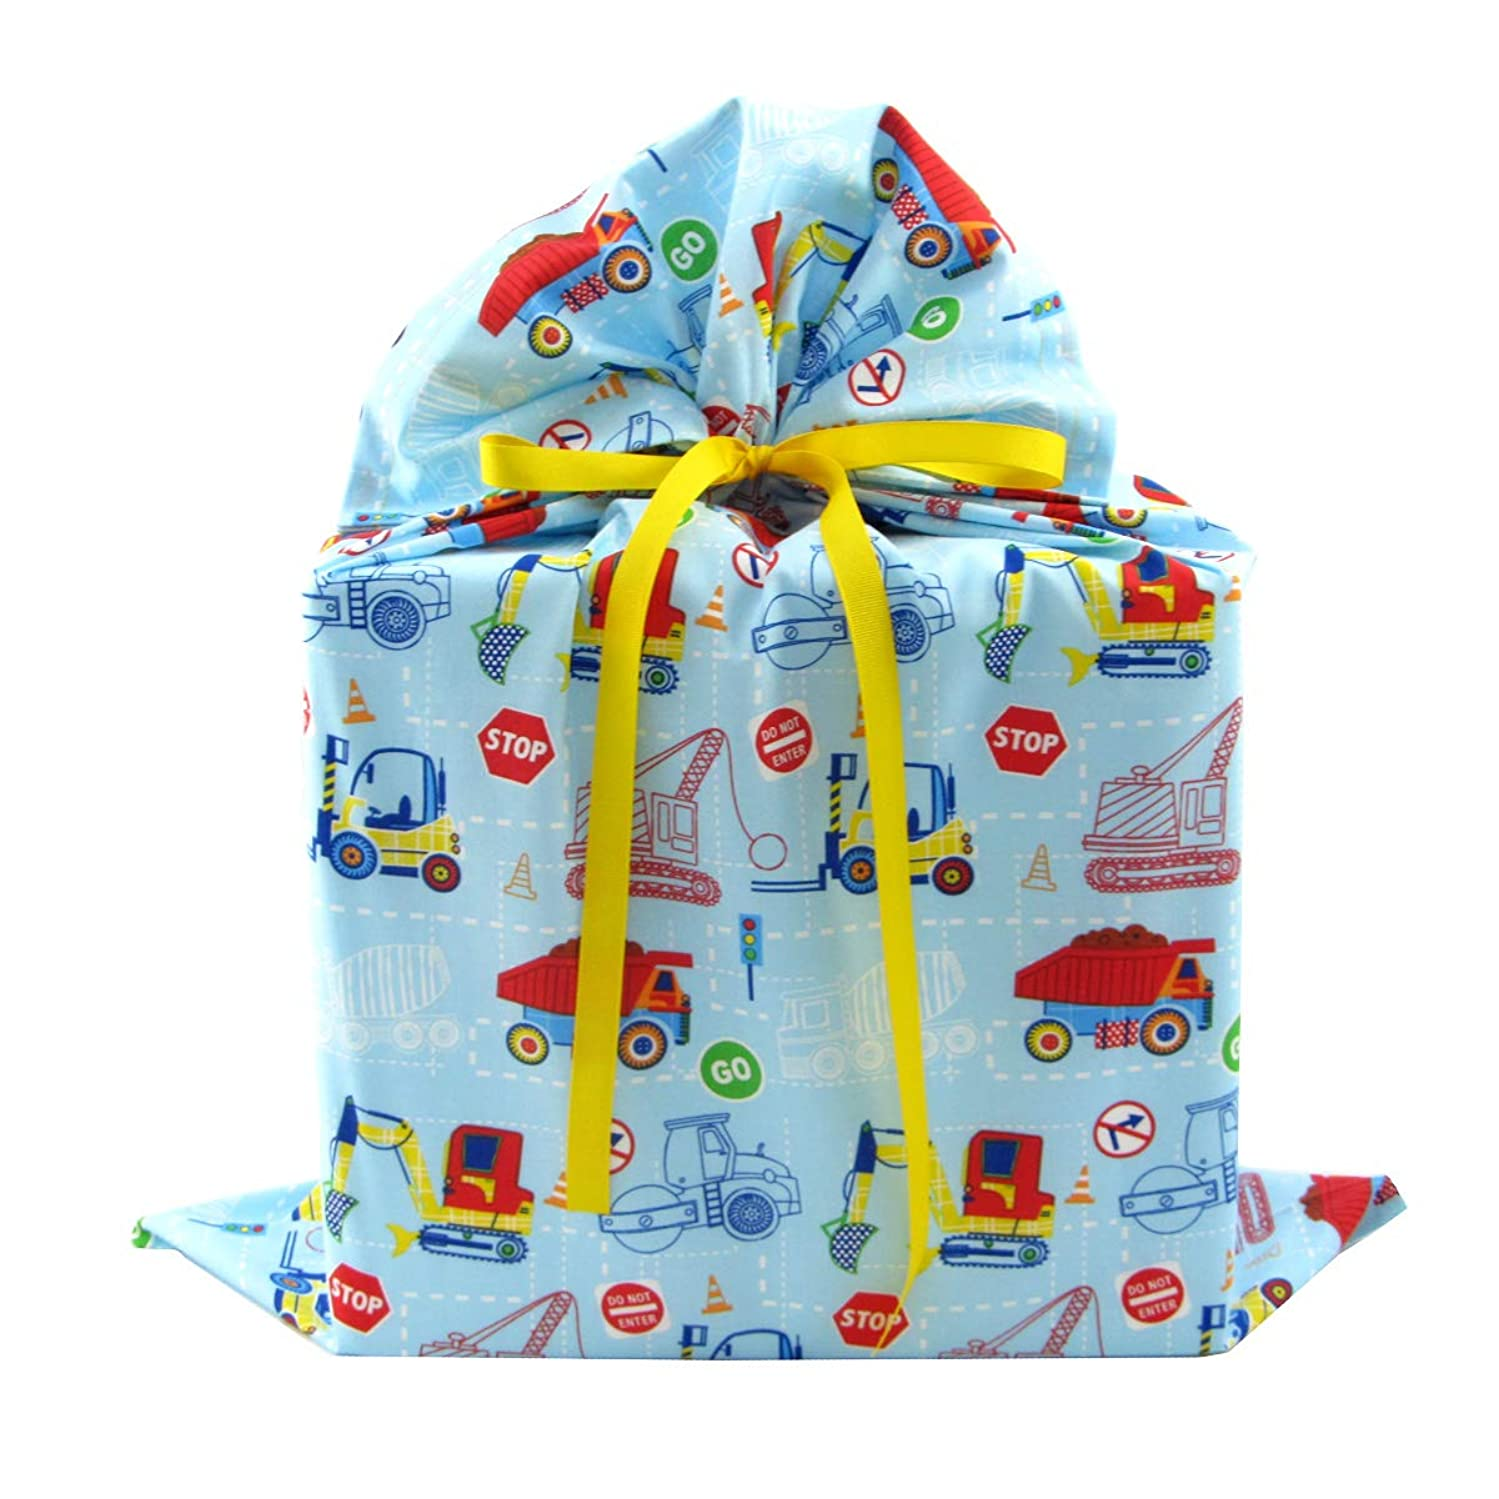 Construction Trucks Reusable Fabric Gift Bag for Child's Birthday or Baby Shower (Large 20 Inches Wide by 27 Inches High)